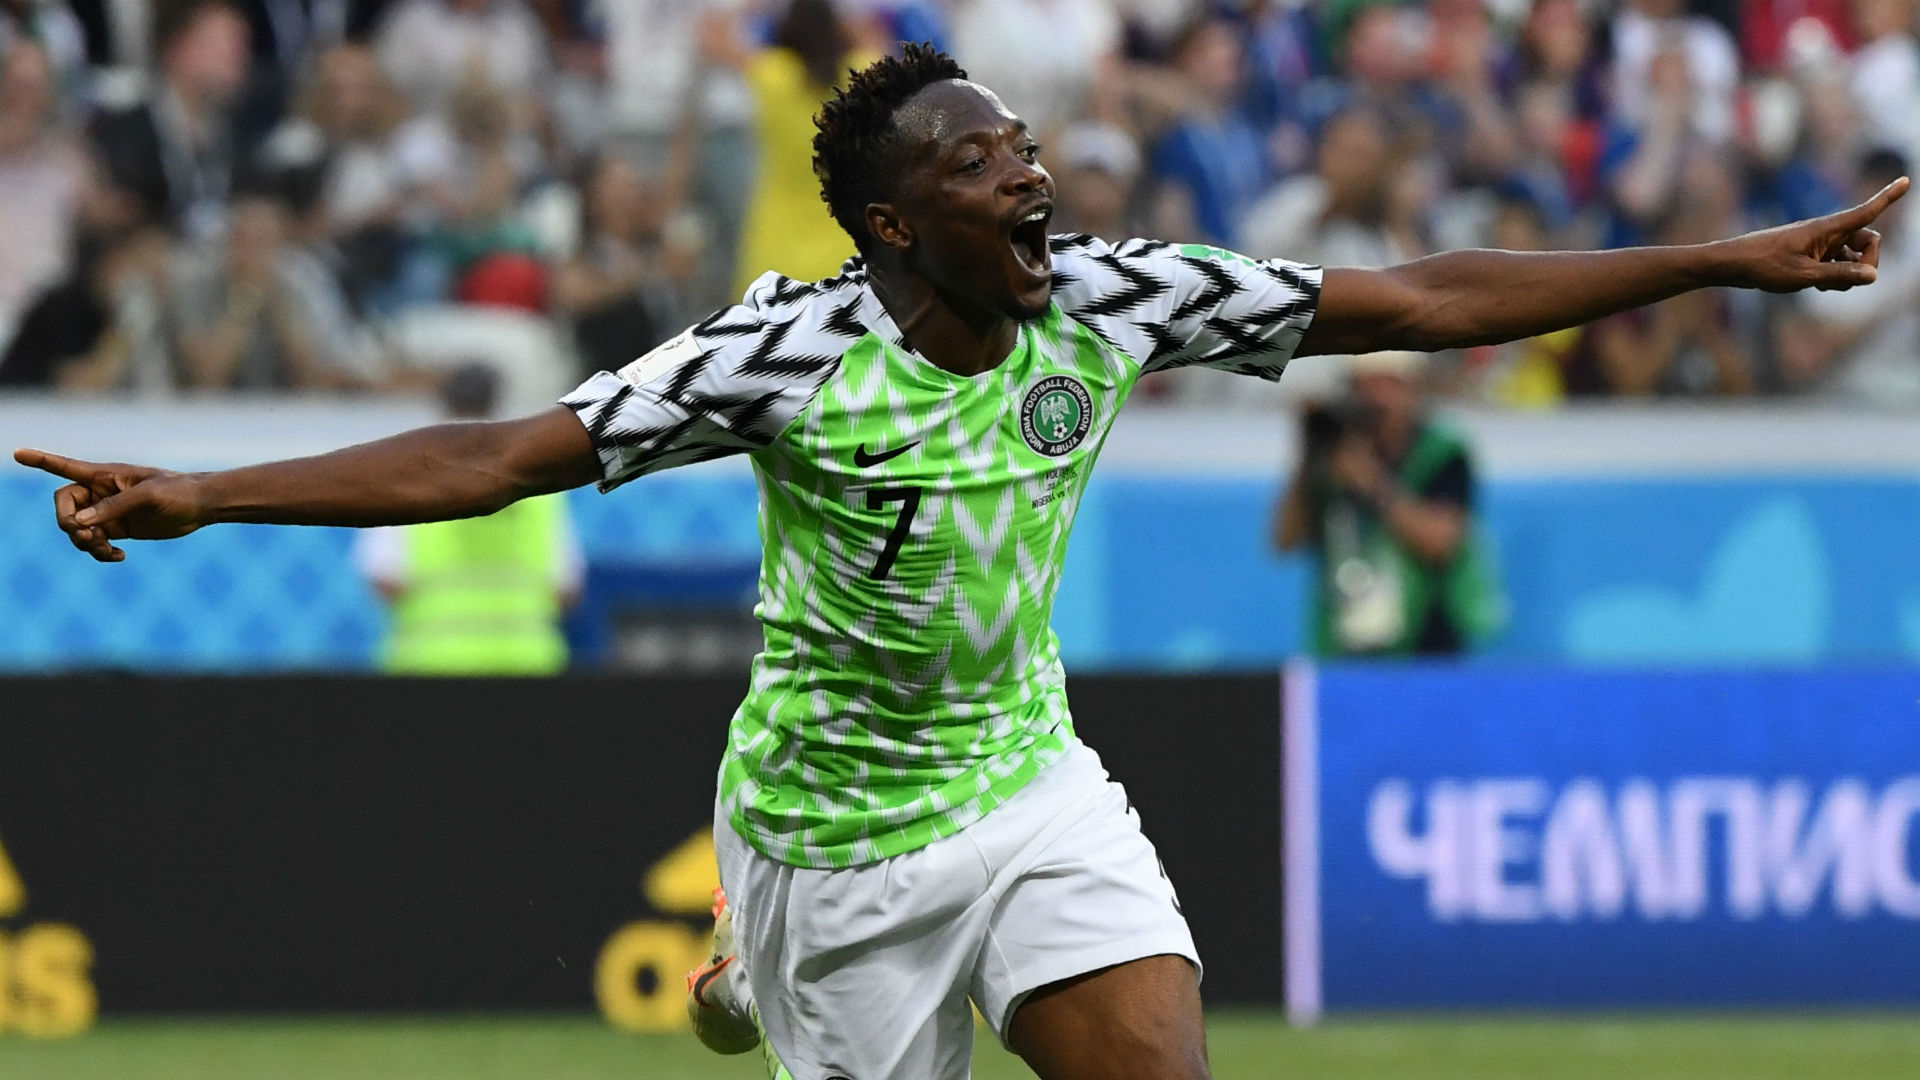 'One of the best days of my life' – Musa remembers World Cup brace against Iceland